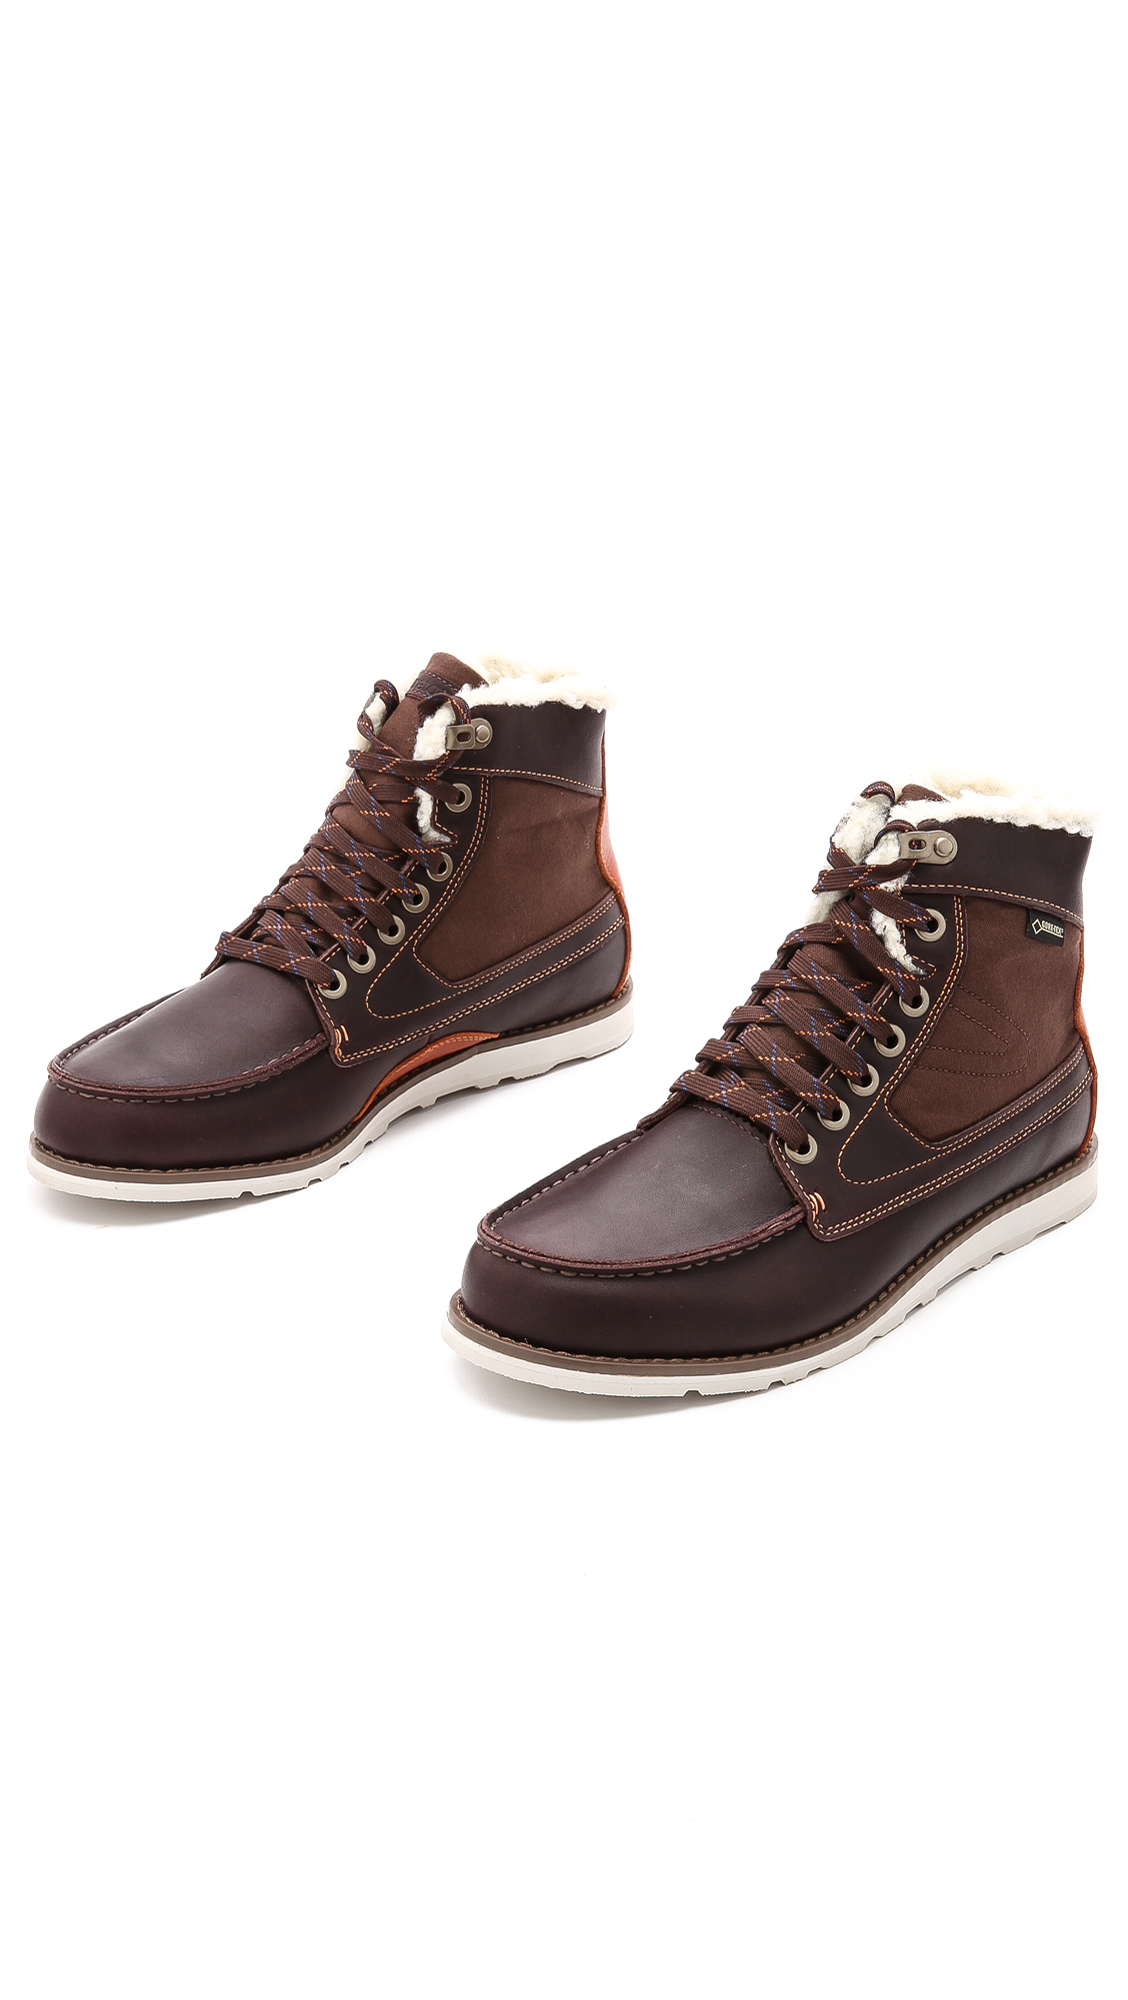 Free shipping on Tretorn men's shoes at freddalaschb69lmz.gq Shop for boots, sneakers, boat shoes and more. Totally free shipping and returns.